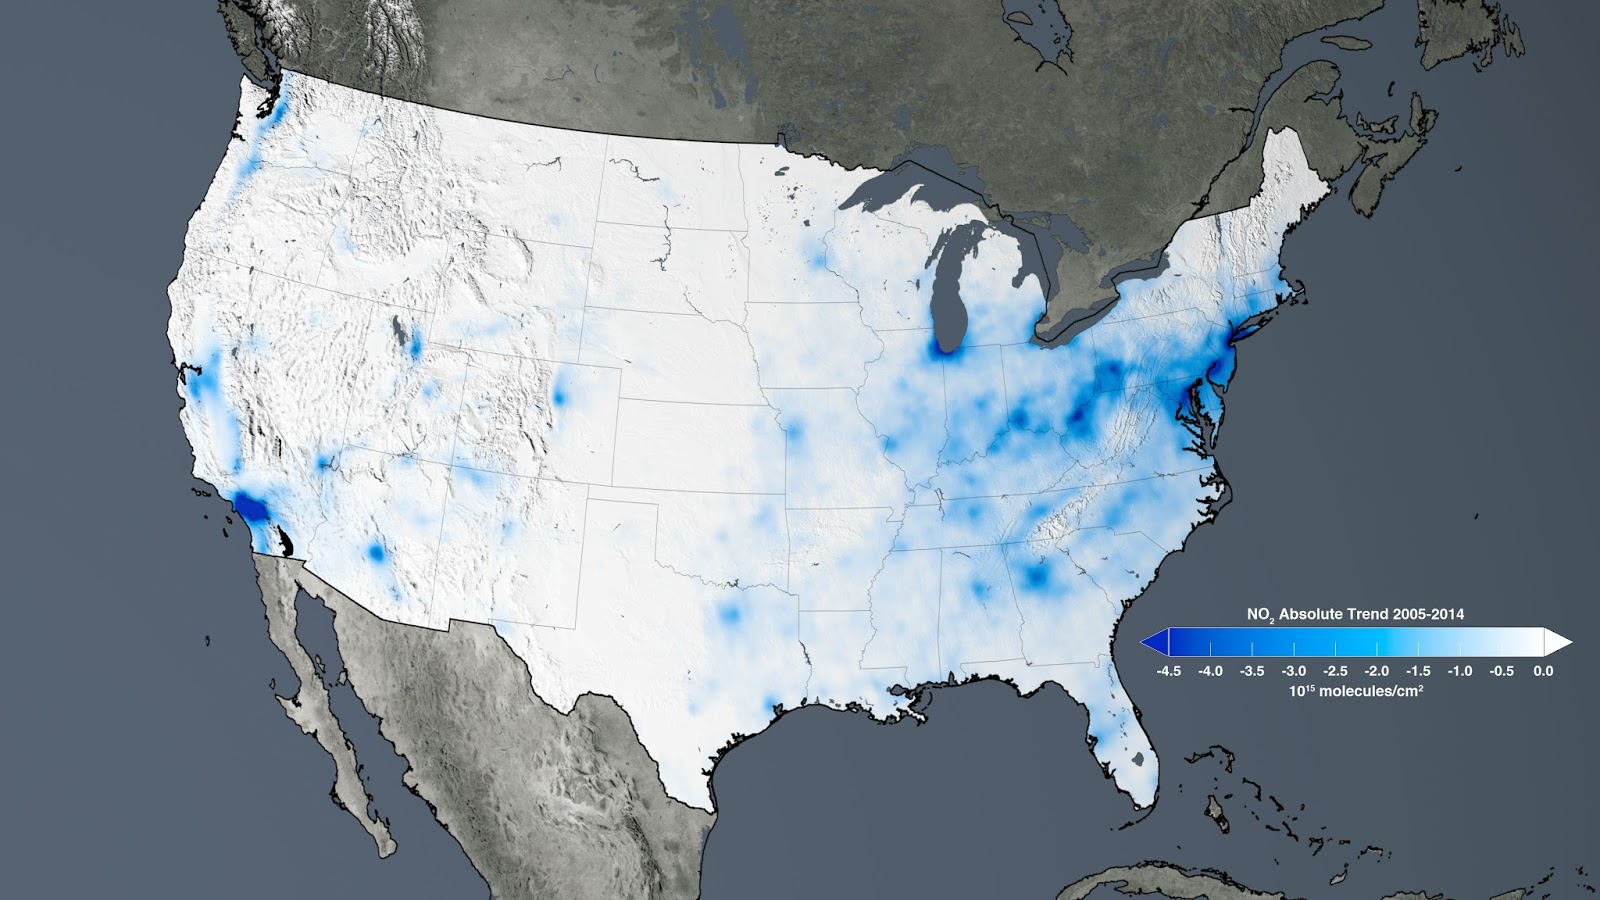 image above the trend map of the united states shows the large decreases in nitrogen dioxide concentrations tied to environmental regulations from 2005 to